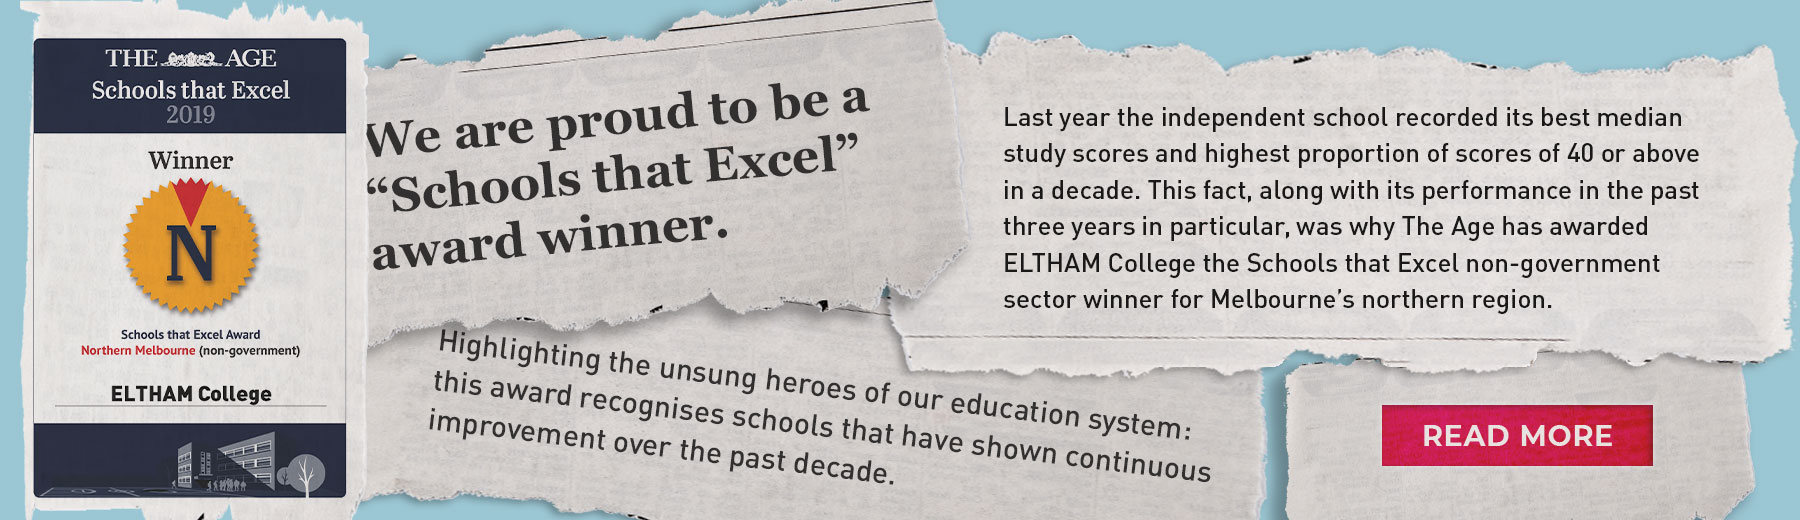 schools that excel eltham college